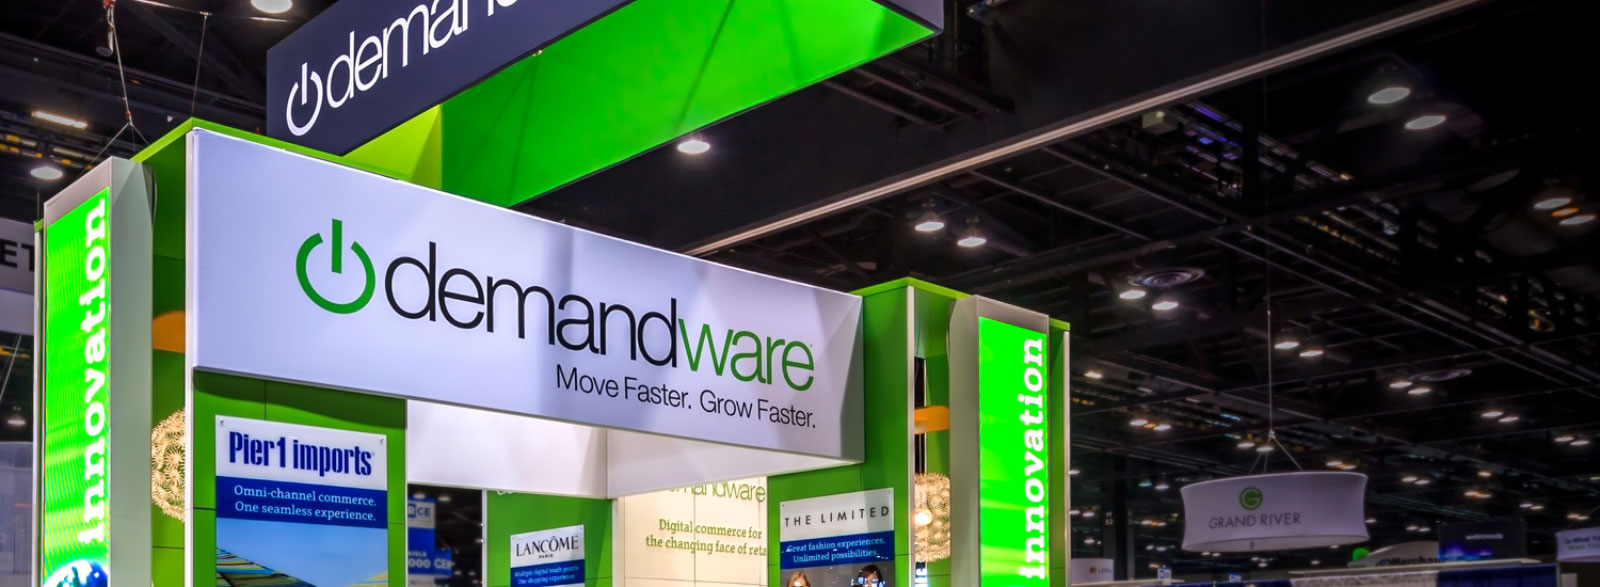 Rental Branded Environment, Demandware at�Shop.Org�Trade Show